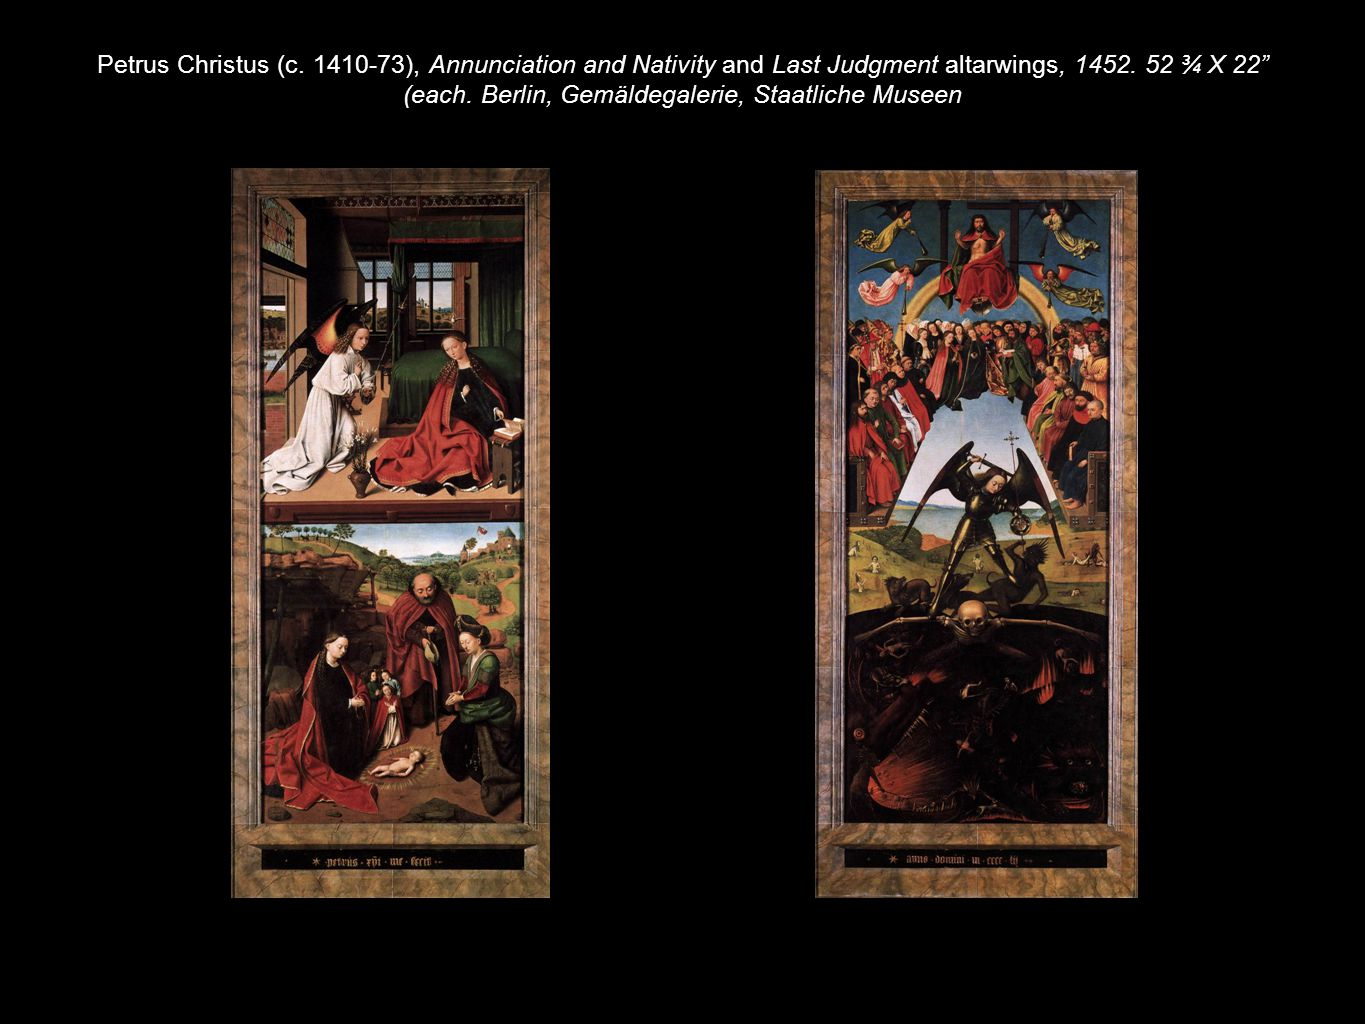 Petrus Christus (c ), Annunciation and Nativity and Last Judgment altarwings, ¾ X 22 (each. Berlin, Gemäldegalerie, Staatliche Museen